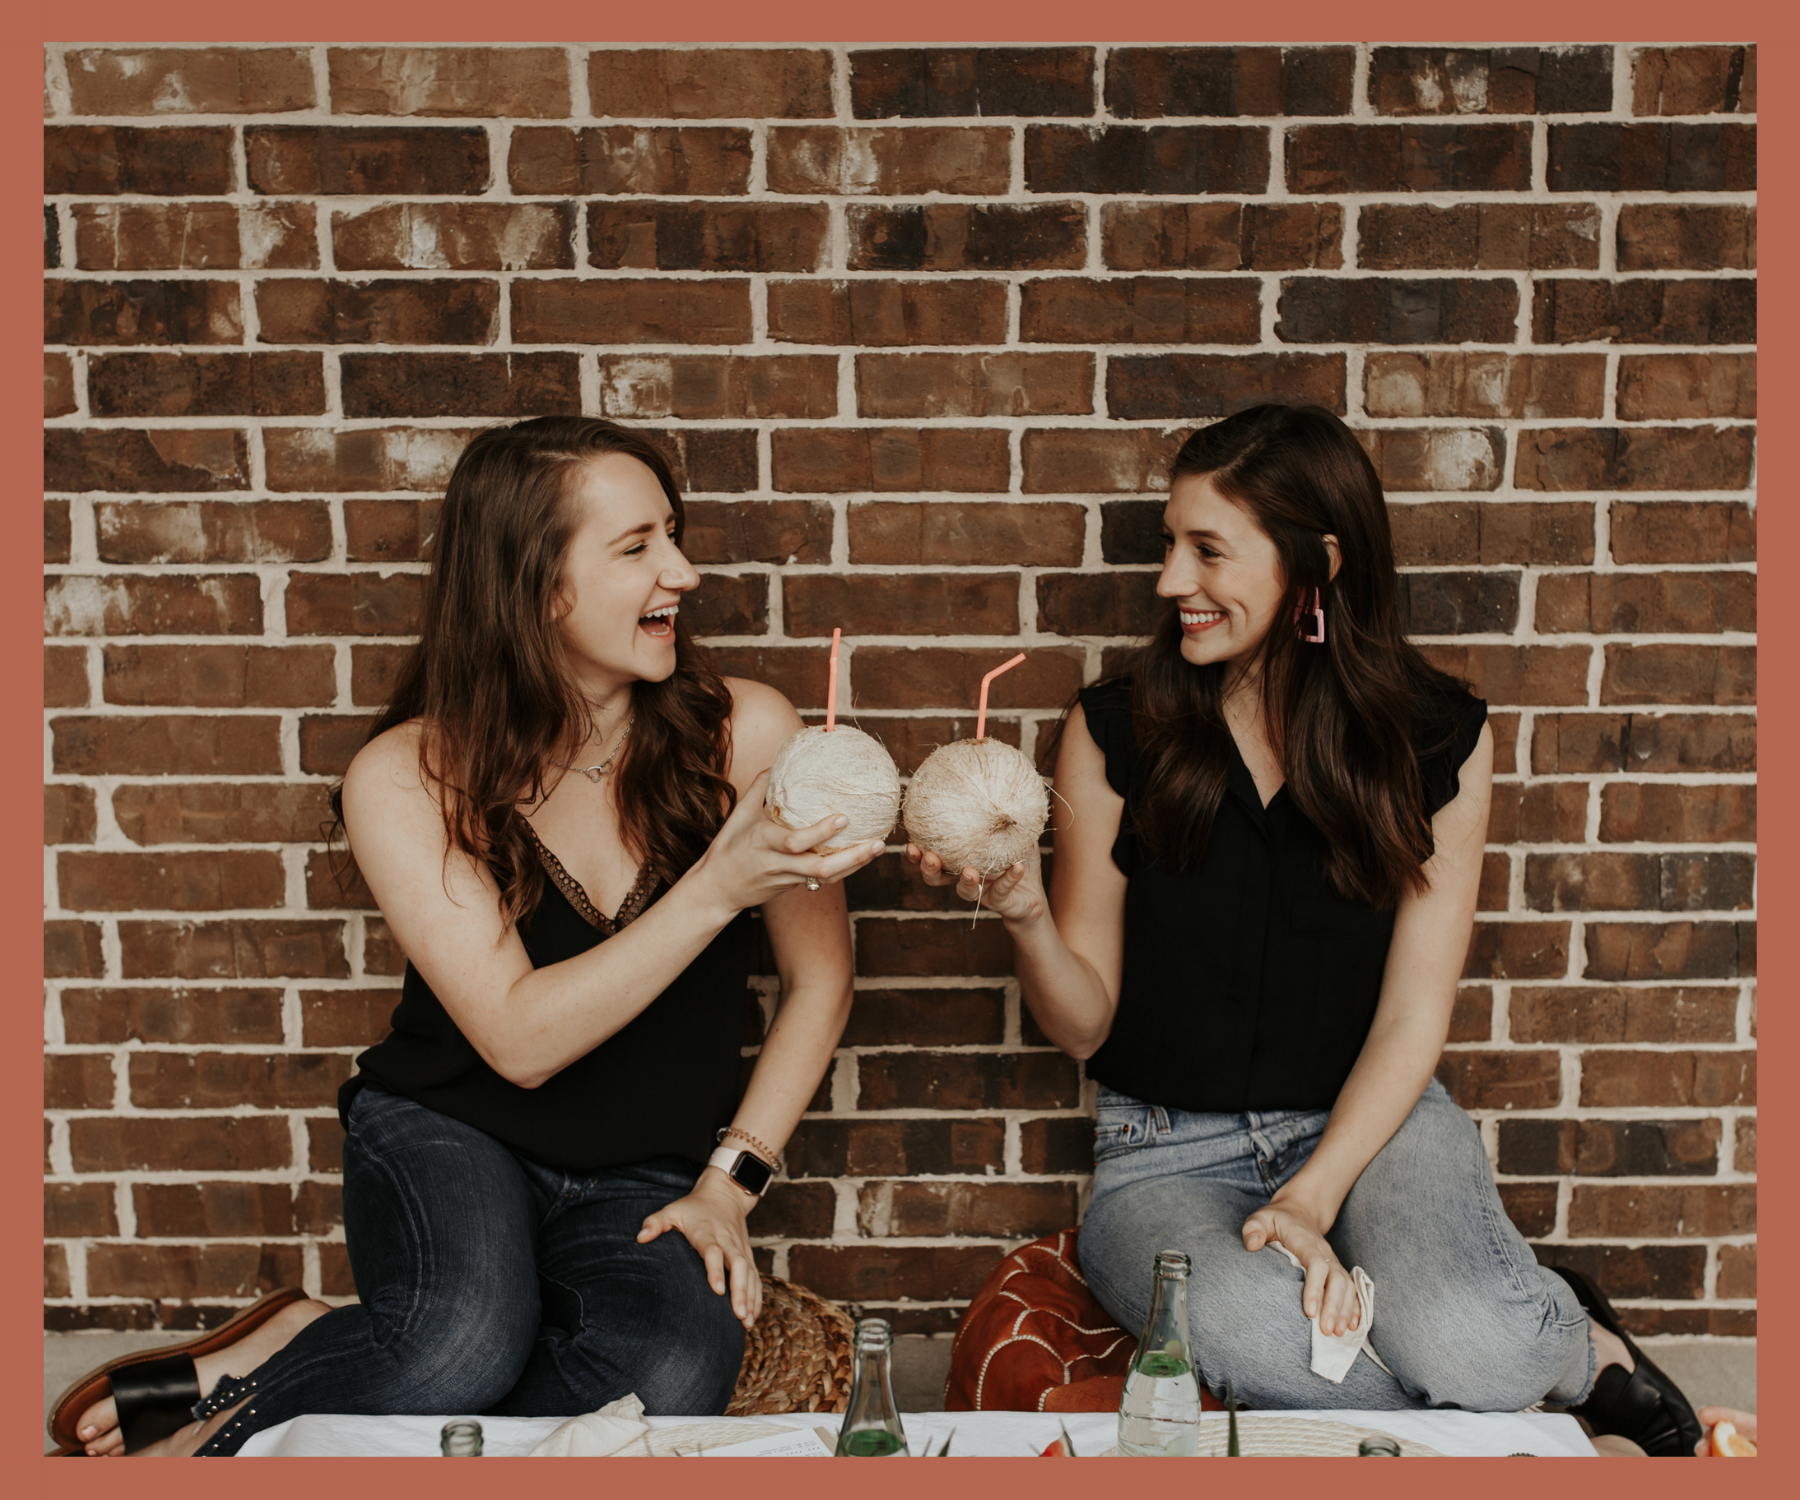 Wanting to grow your business and connect with other female entrepreneurs? -